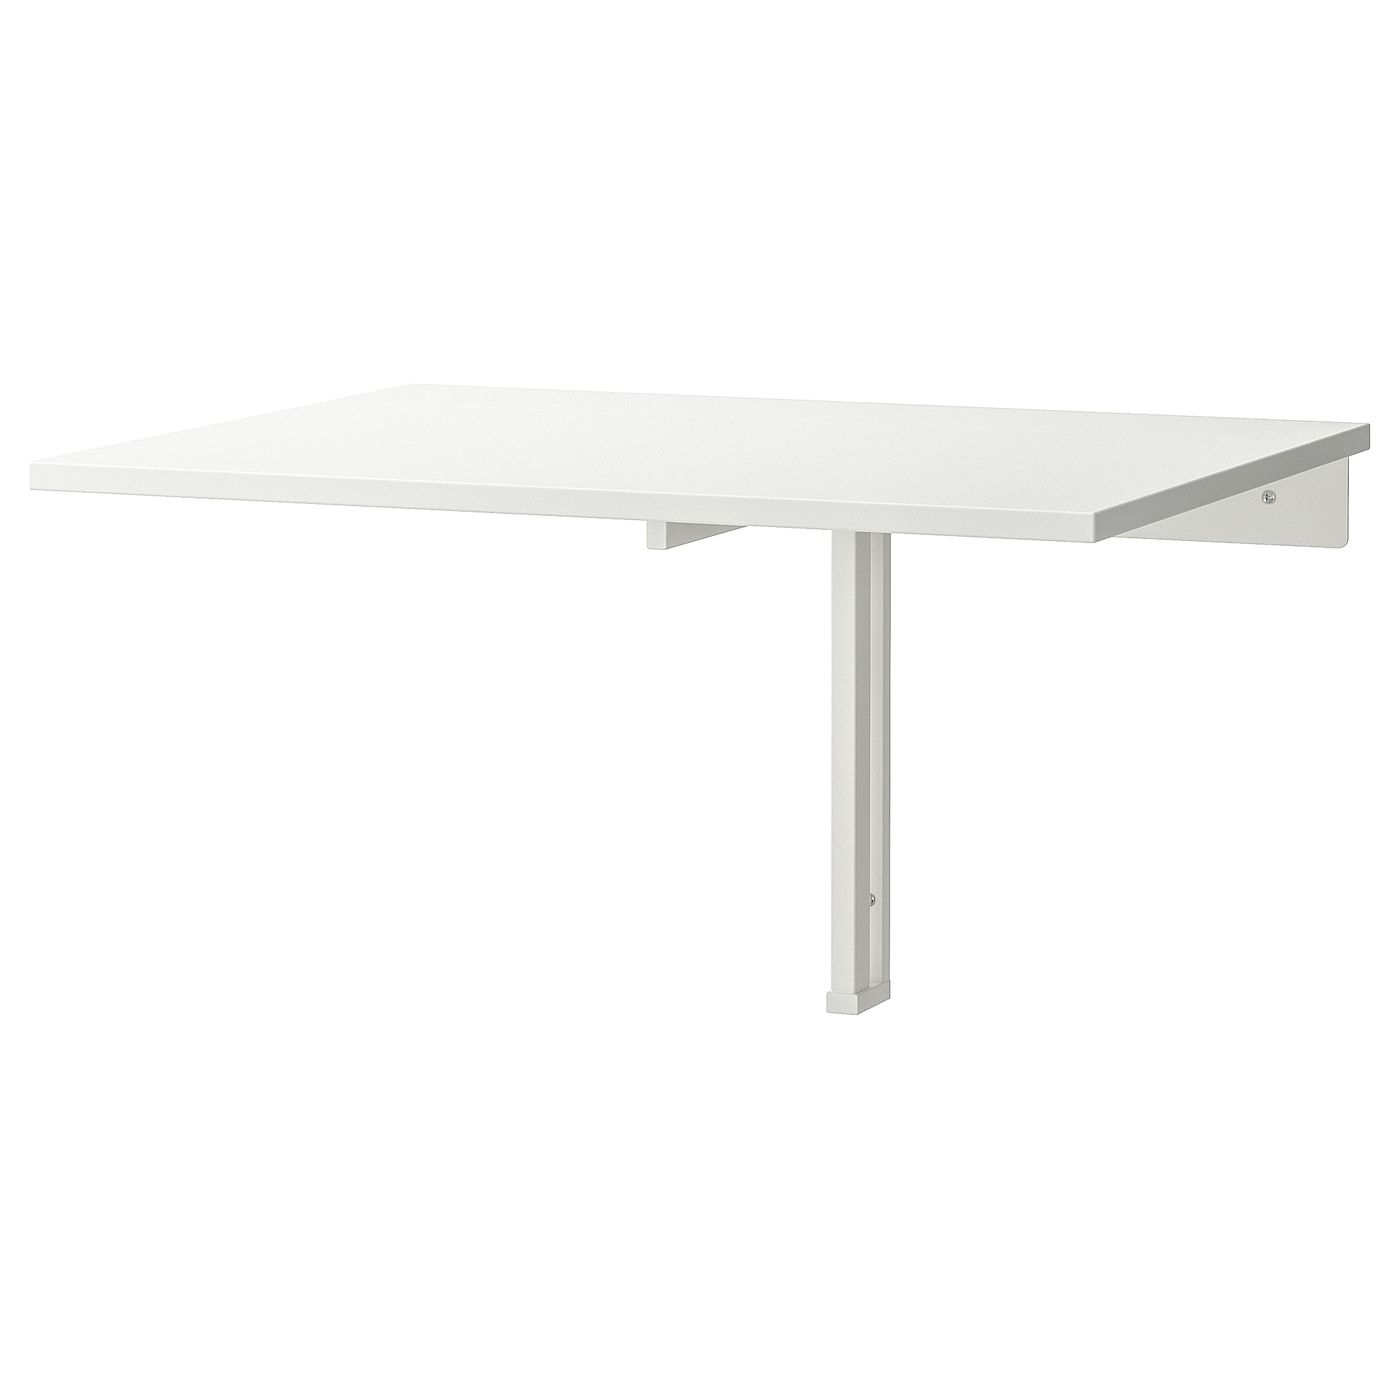 Norberg White Wall Mounted Drop Leaf Table Becomes A Practical Shelf For Small Things When Folded Down You In 2020 Drop Leaf Table Wall Mounted Desk Ikea Leaf Table